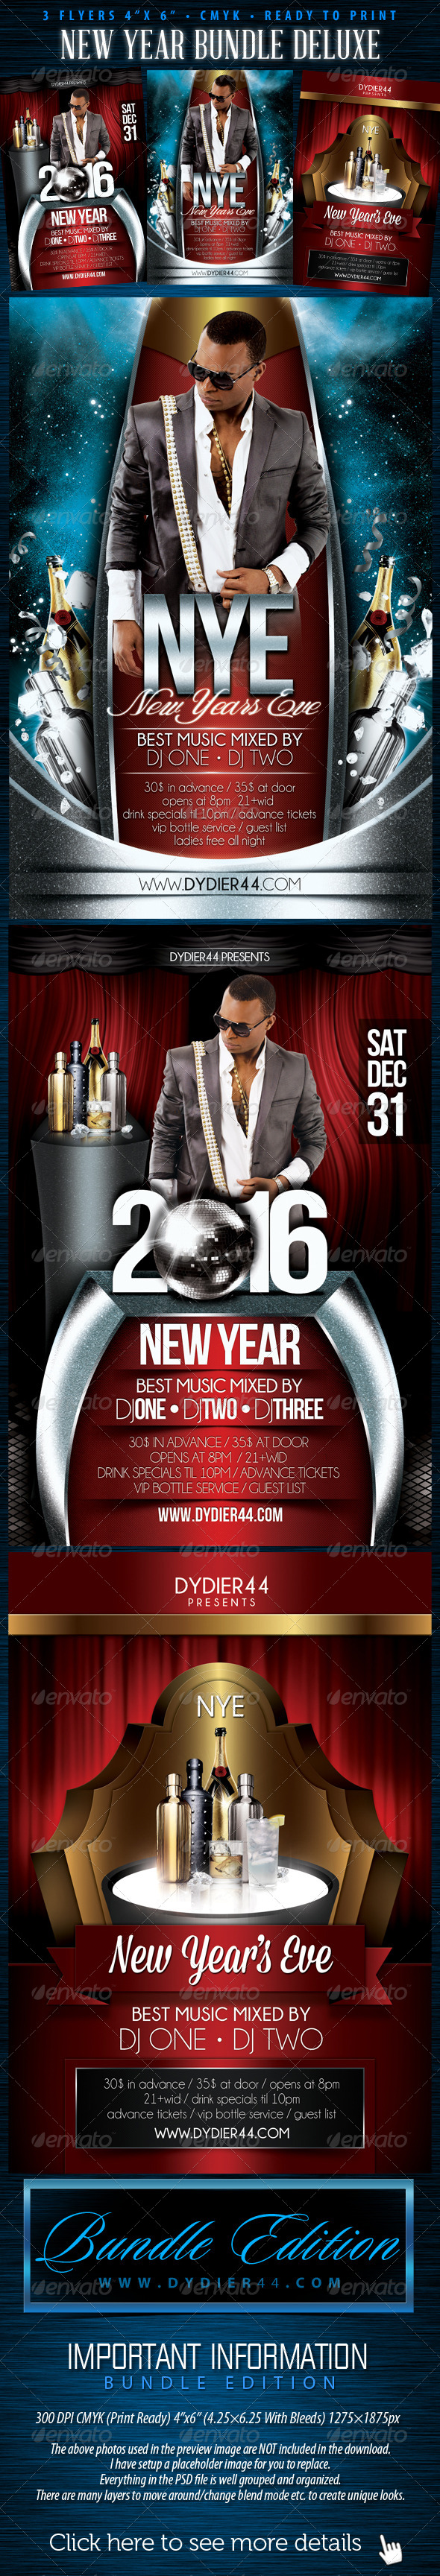 New Years Bundle Deluxe  (Flyer Template 4x6) - Events Flyers